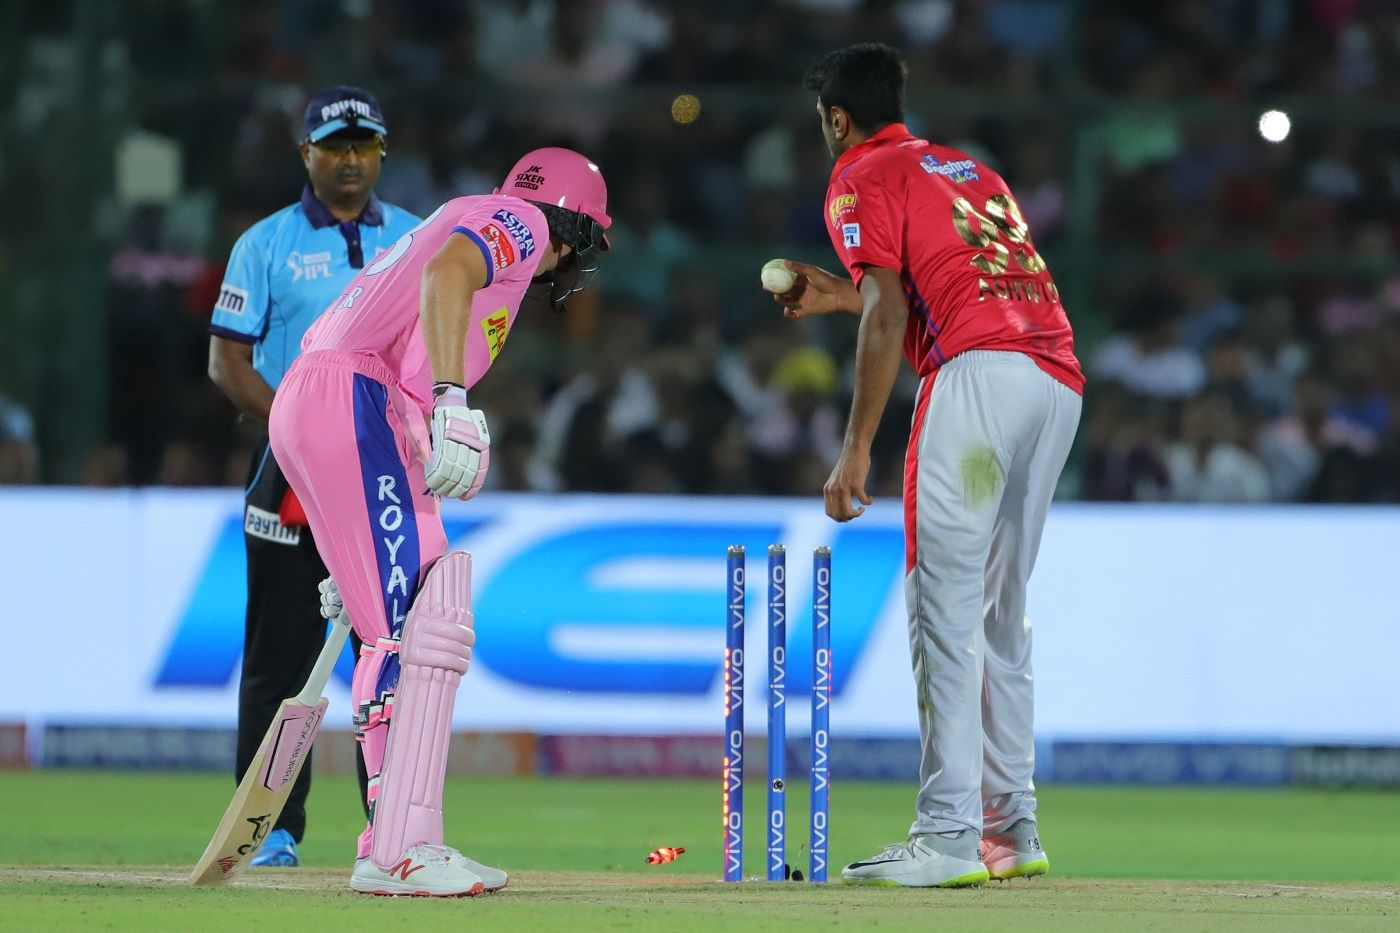 R Ashwin's controversial dismissal of Jos Buttler has split opinions.